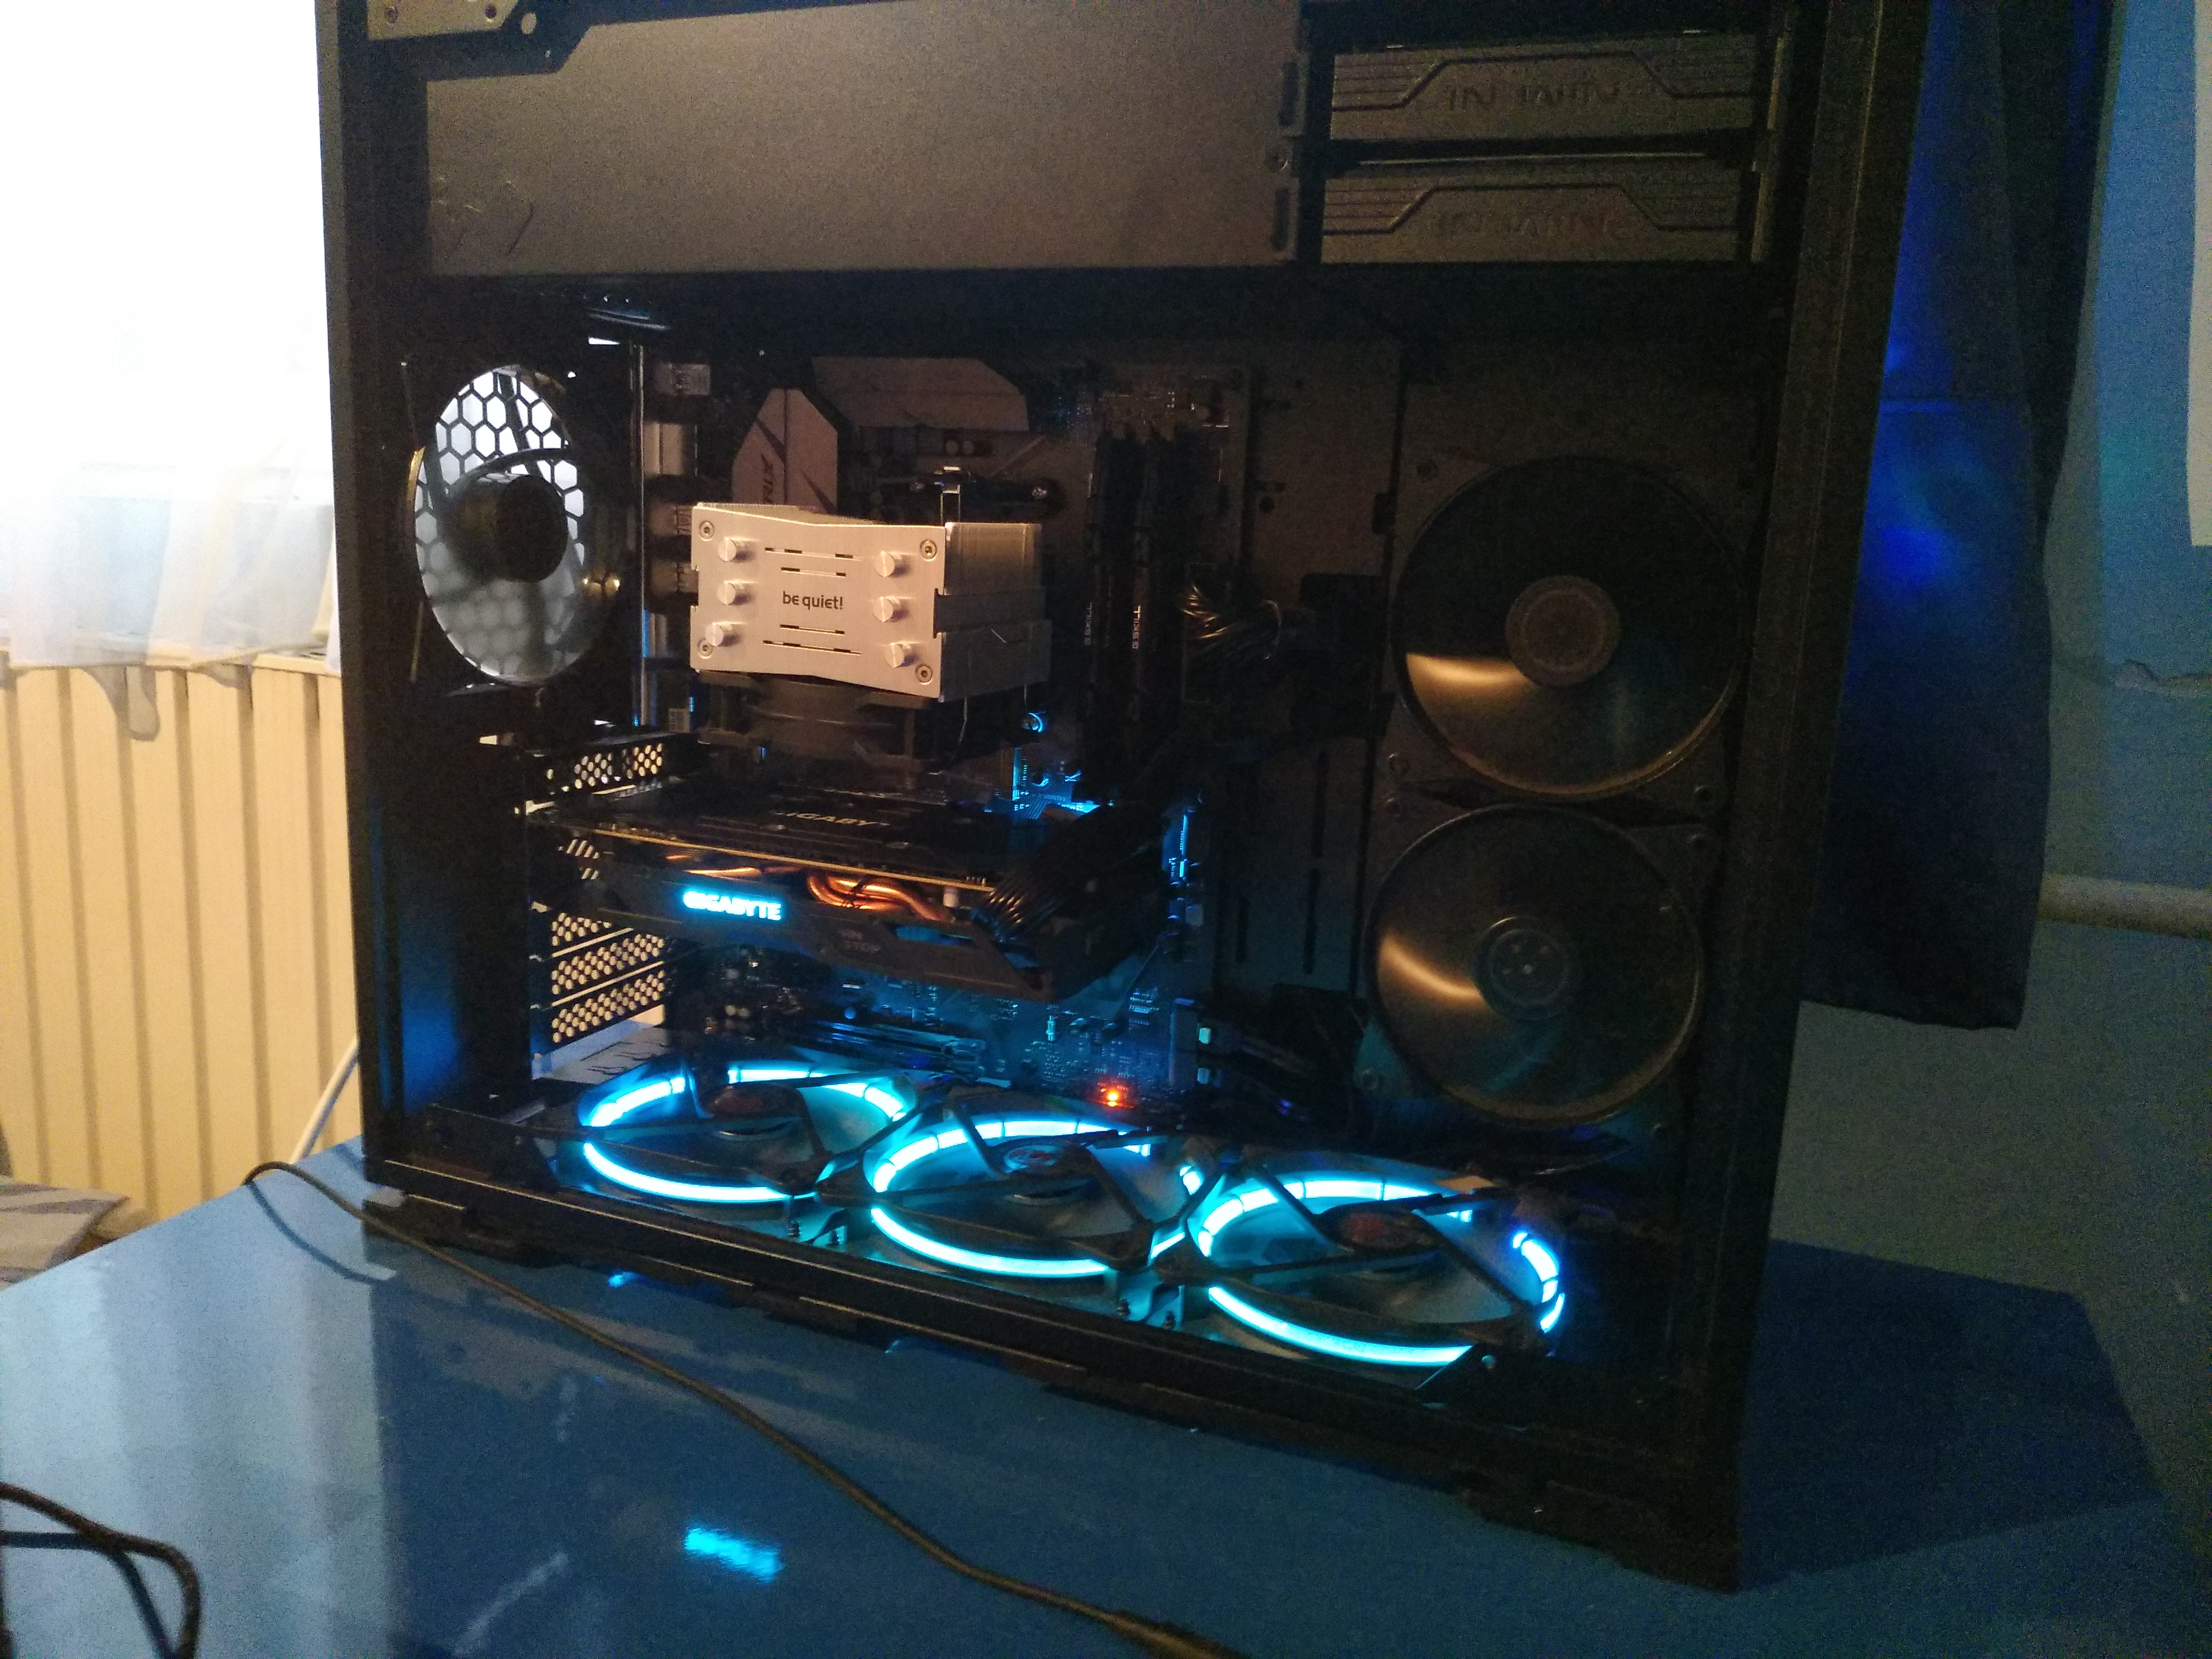 Your PC ATM | Page 1192 | TechPowerUp Forums